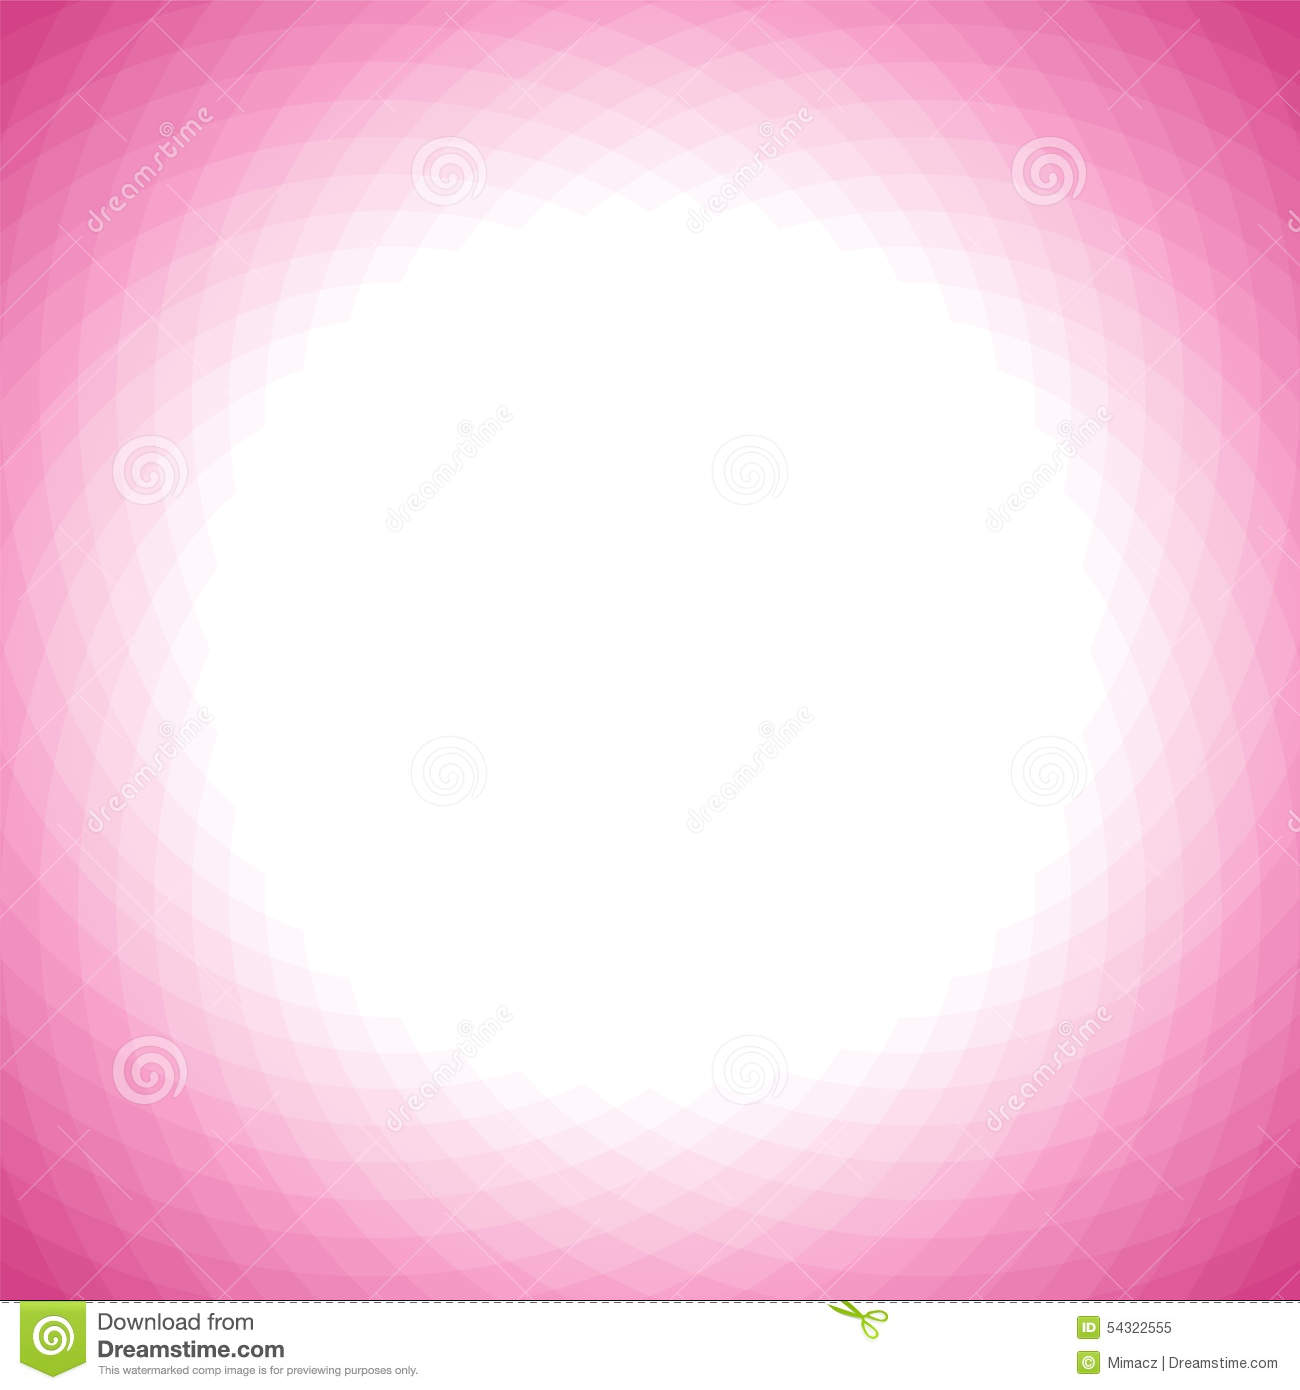 Background image center - Love Pink Geometric Background With White Center